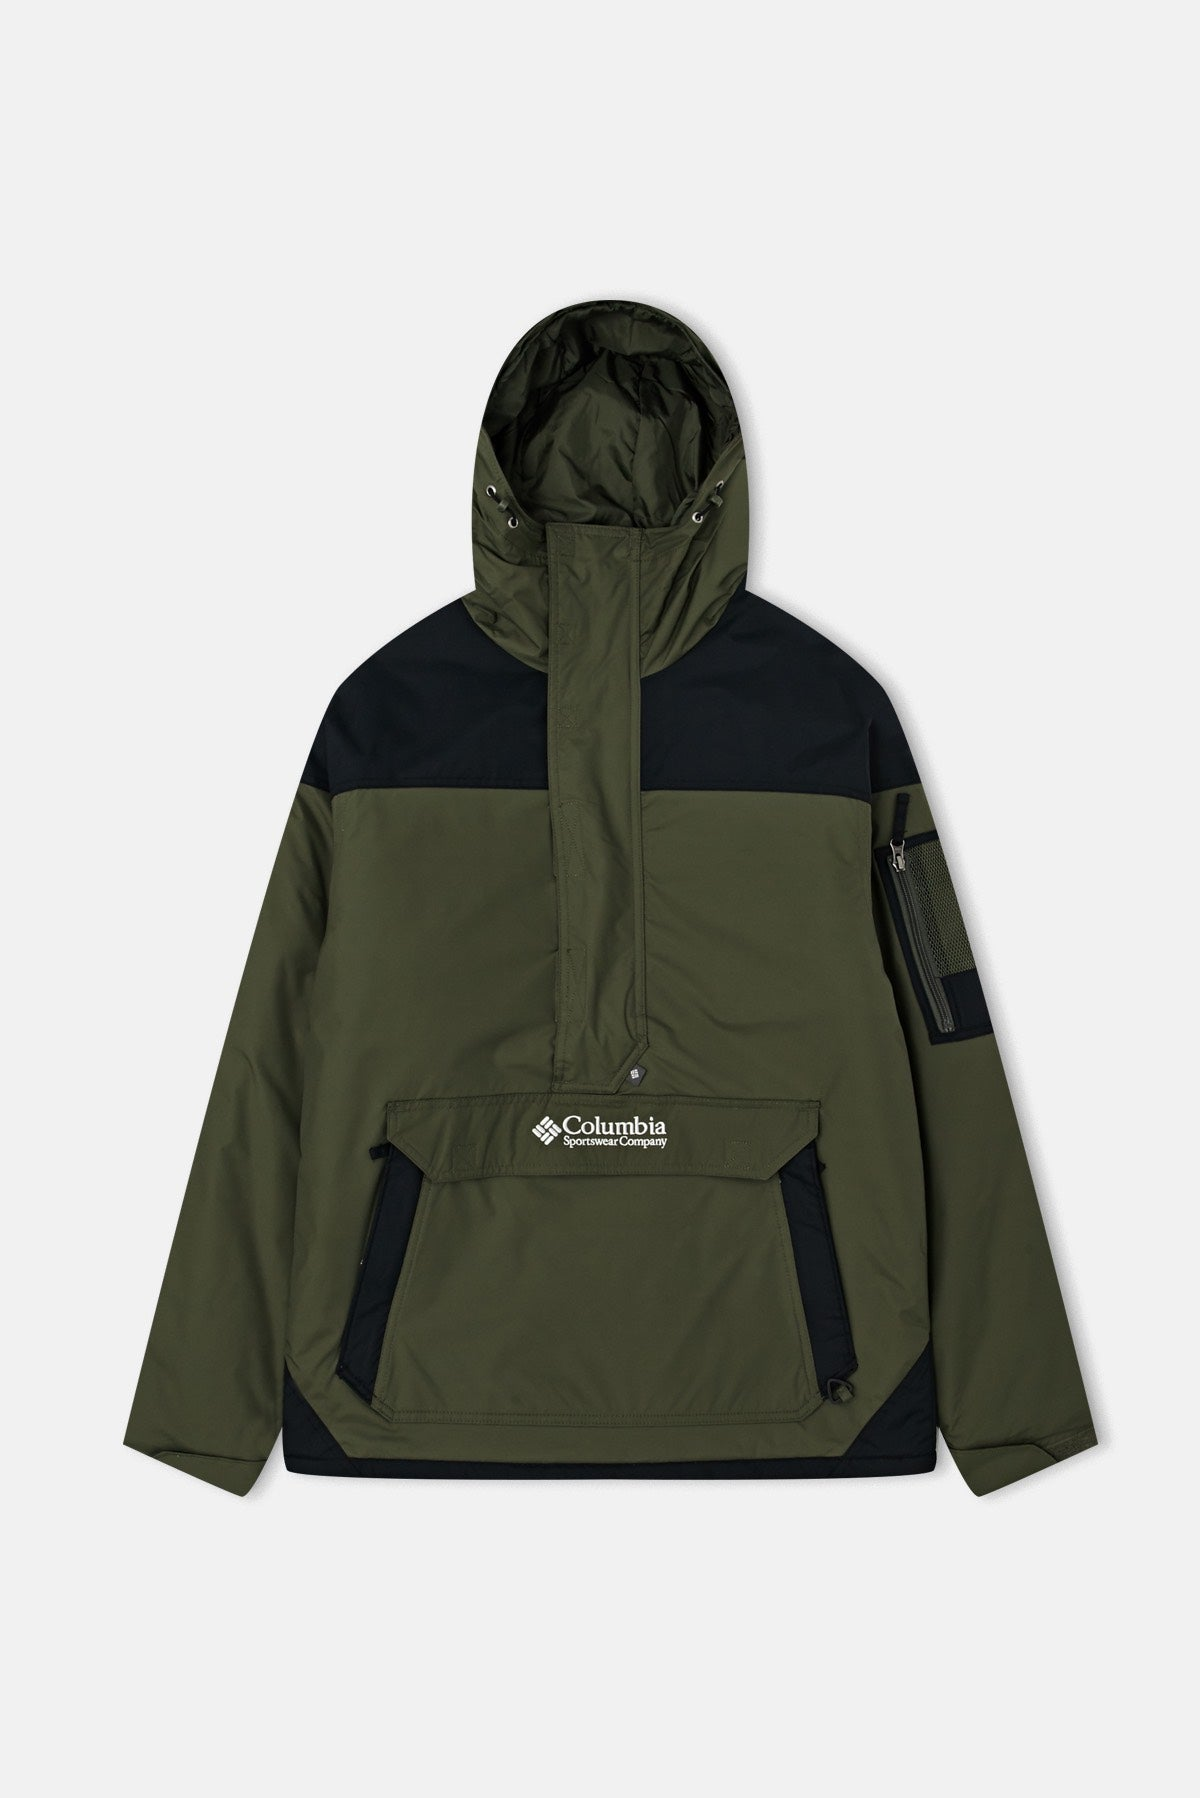 381614ed37bd2 Columbia Challenger Pullover Jacket available from Priory